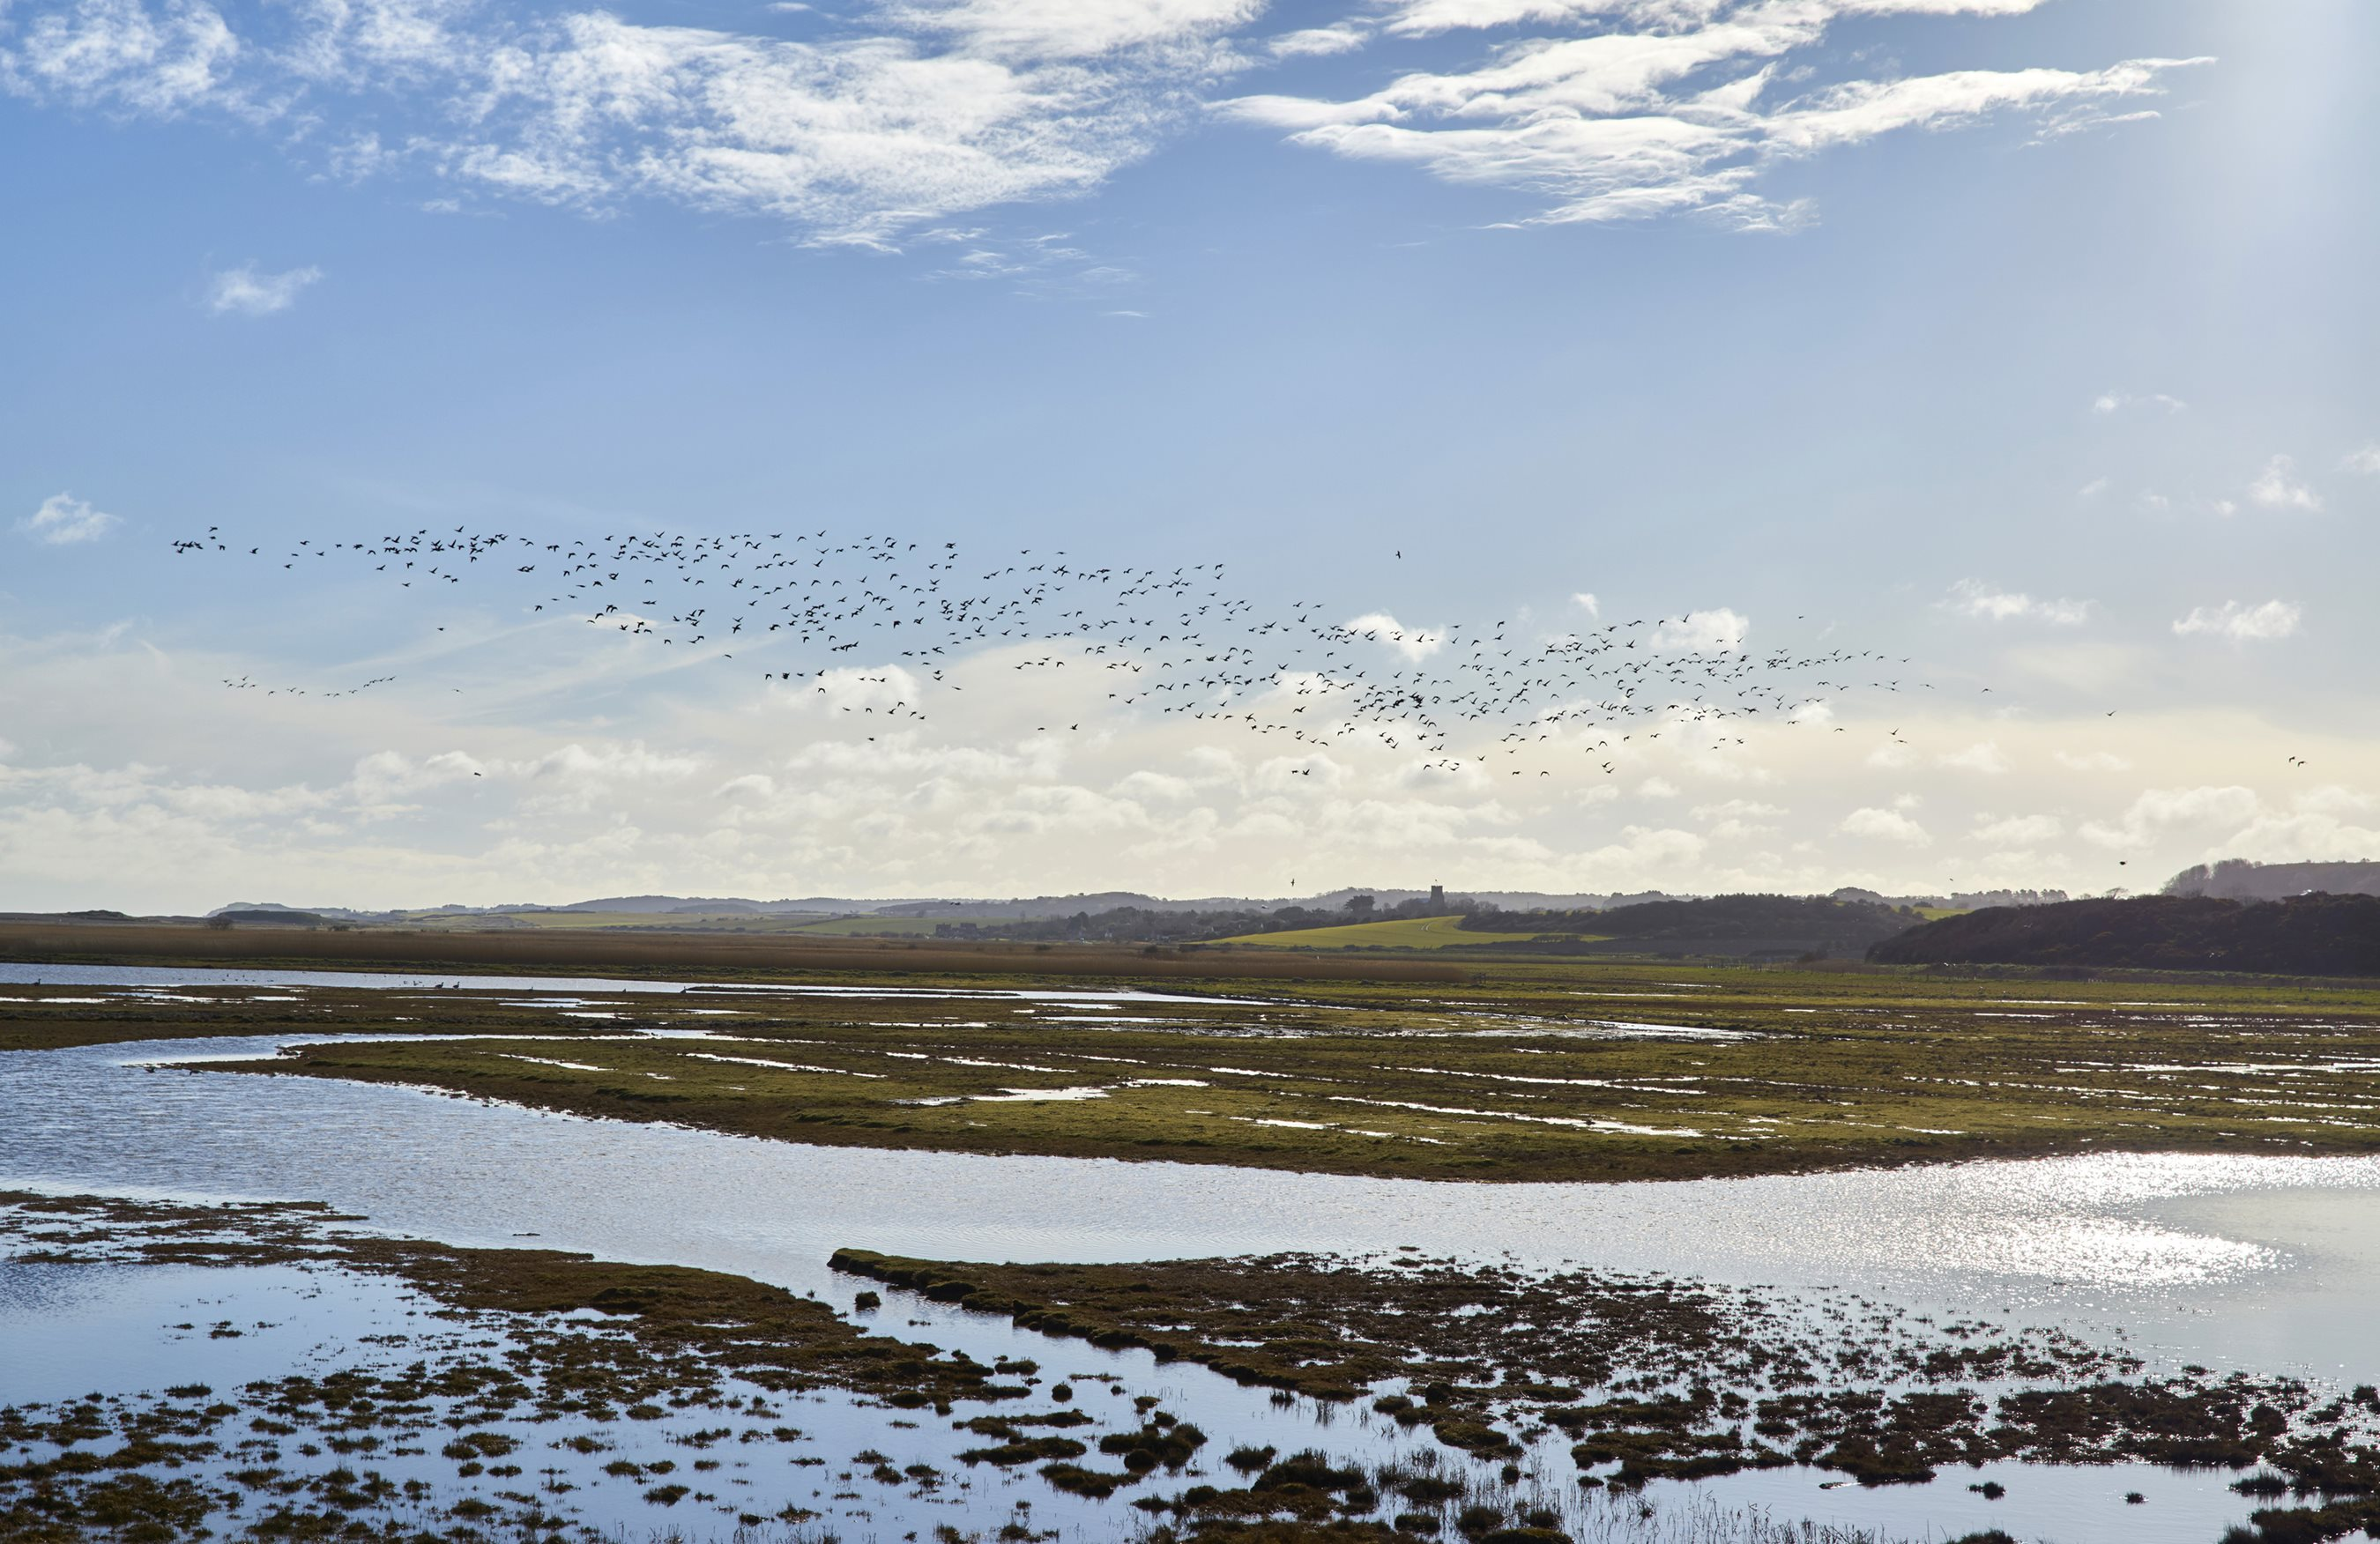 Brew with a View, NWT Cley Marshes NR25 7SA | Take a social wander around the reserve with a focus on enjoying the outdoors with both friends and strangers. | Walking, social, wildlife, hot drinks